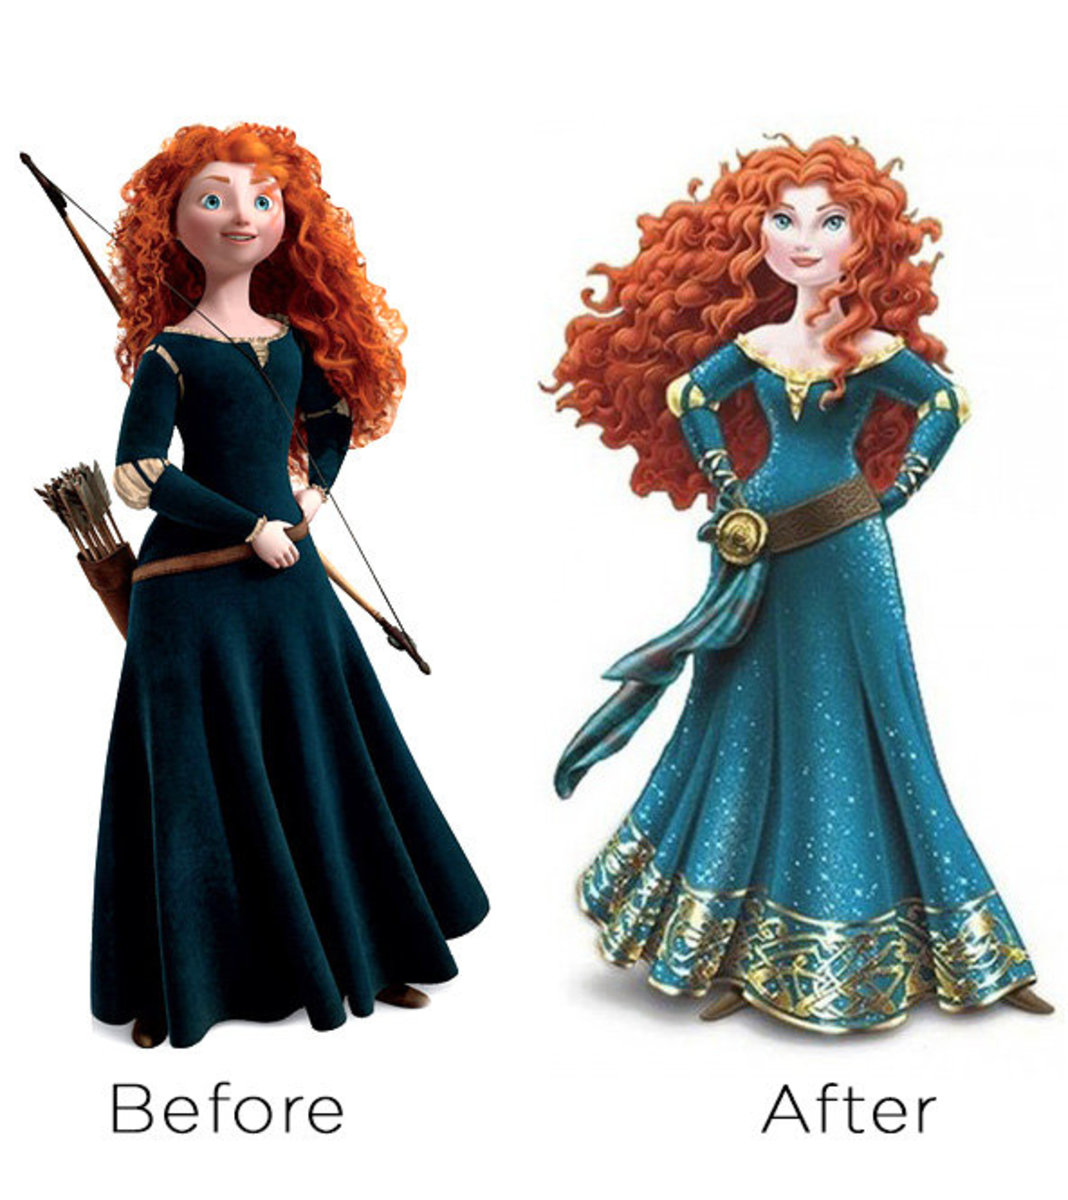 The before and after Merida.